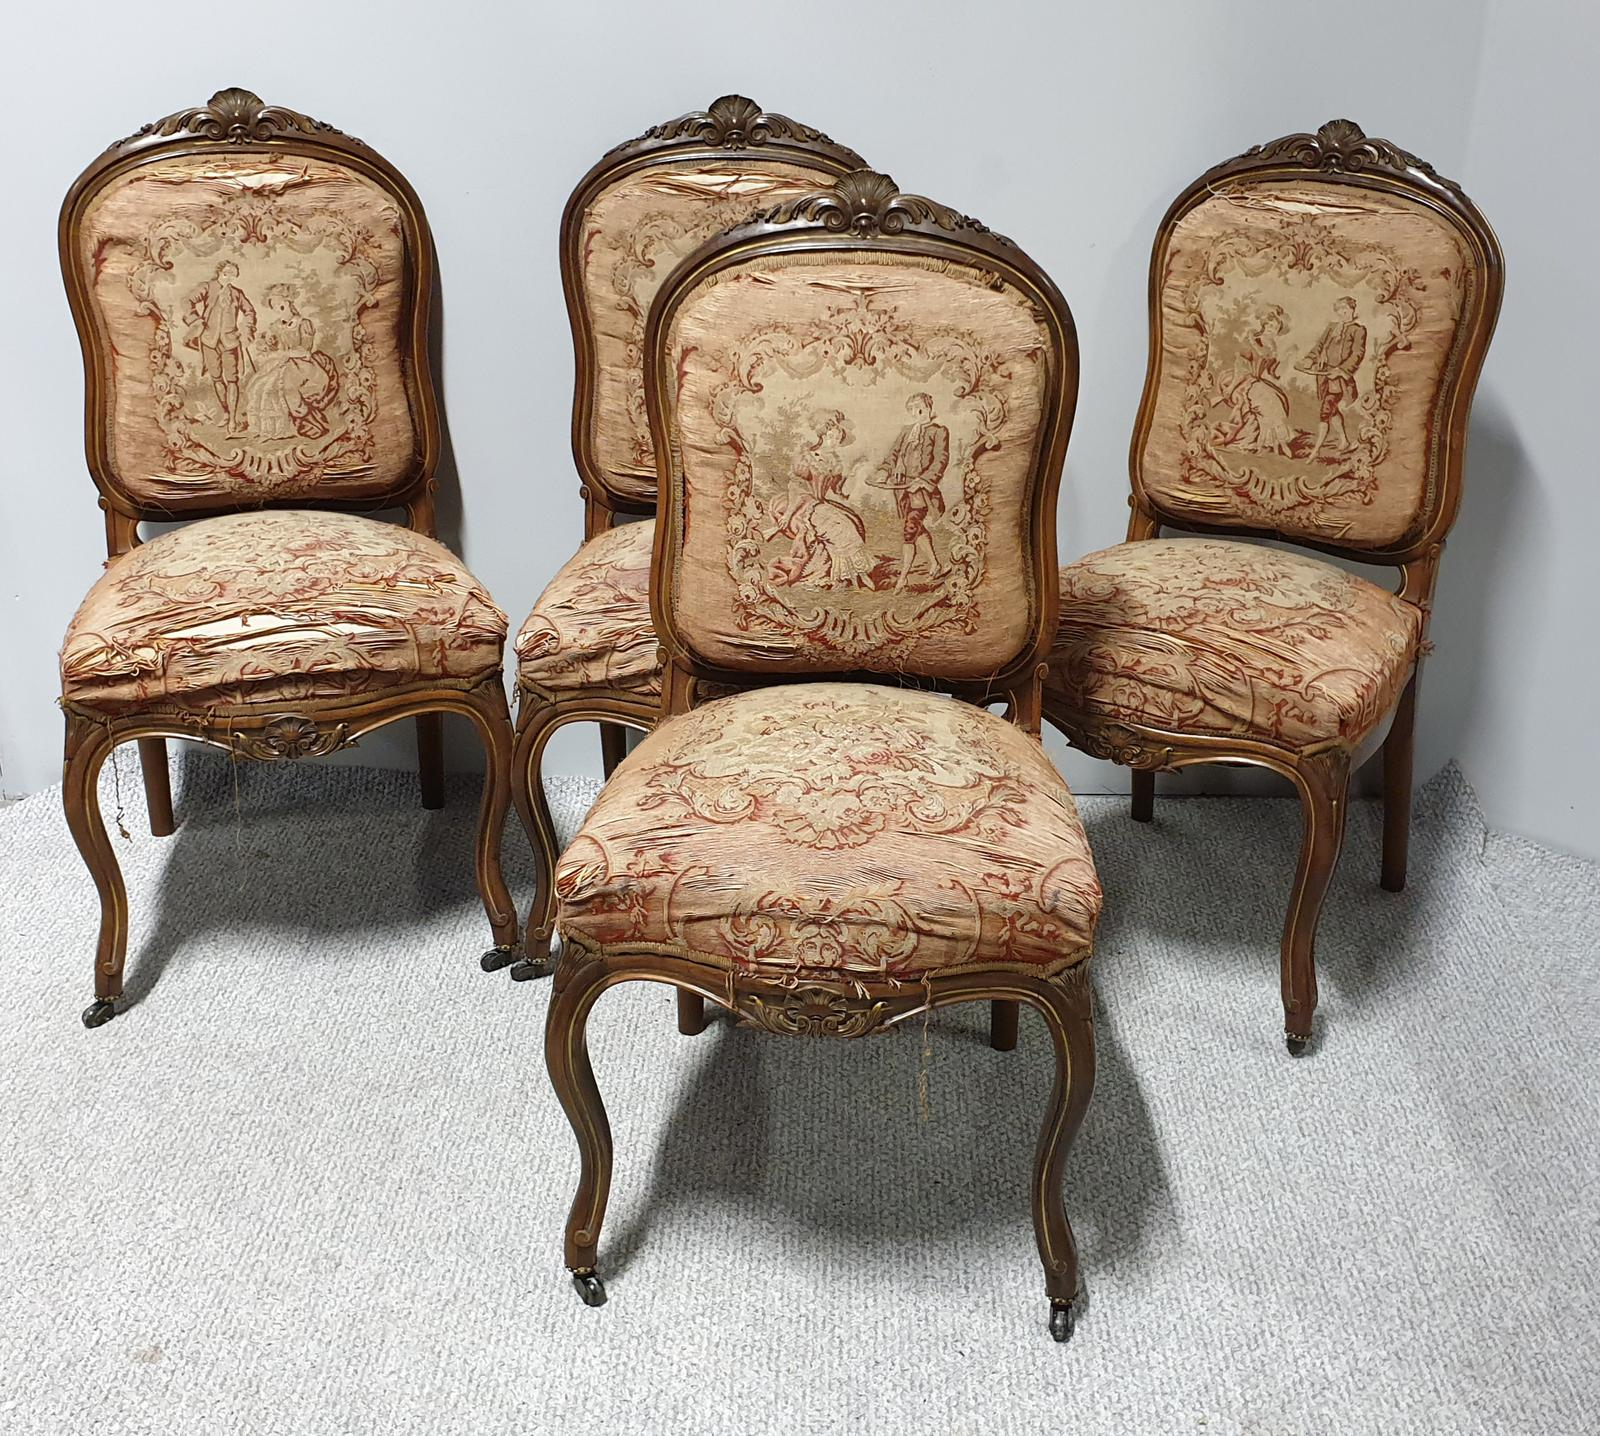 Four French Country House Salon Dining Chairs (1 of 1)